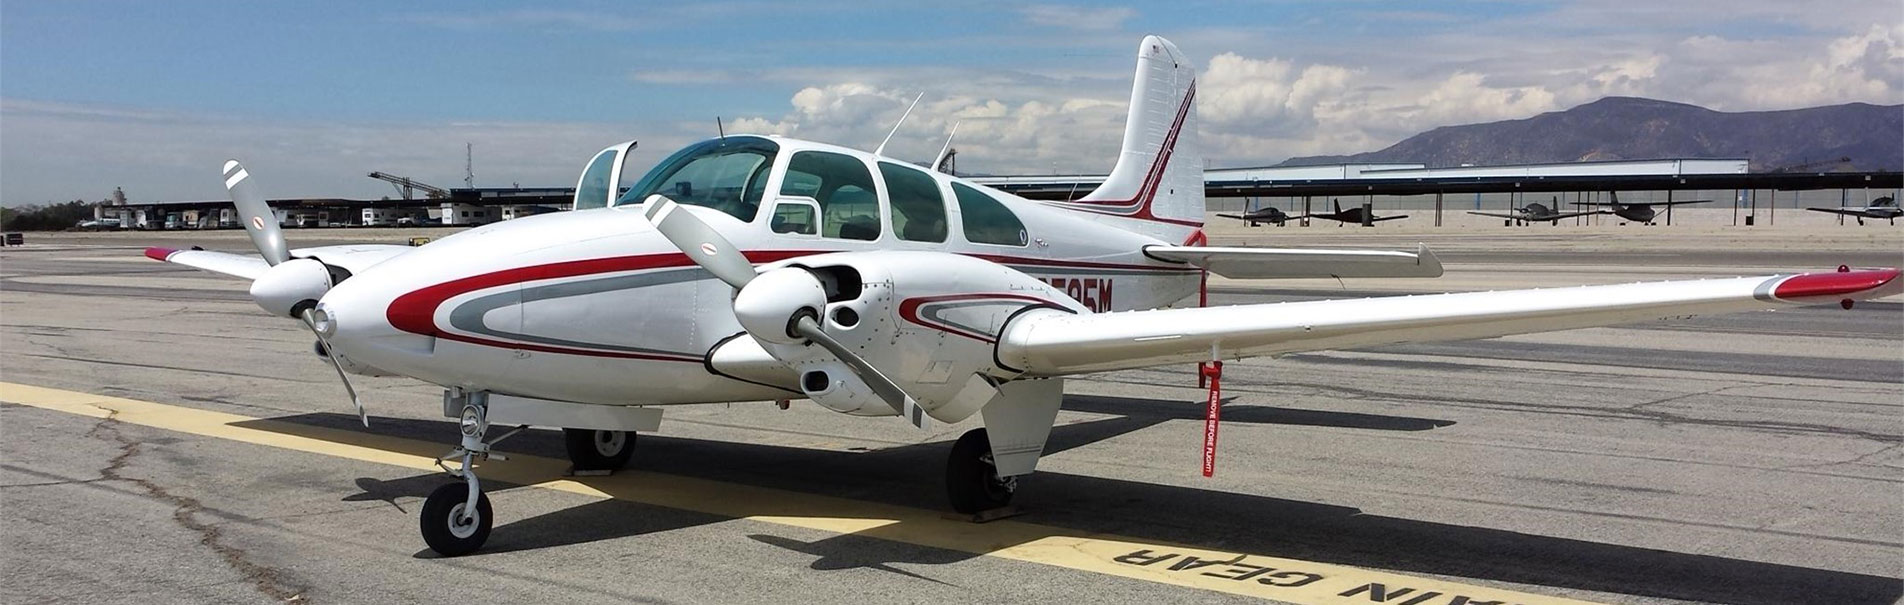 Products | Arrell Aircraft Sales: Beechcraft Parts, Beechcraft